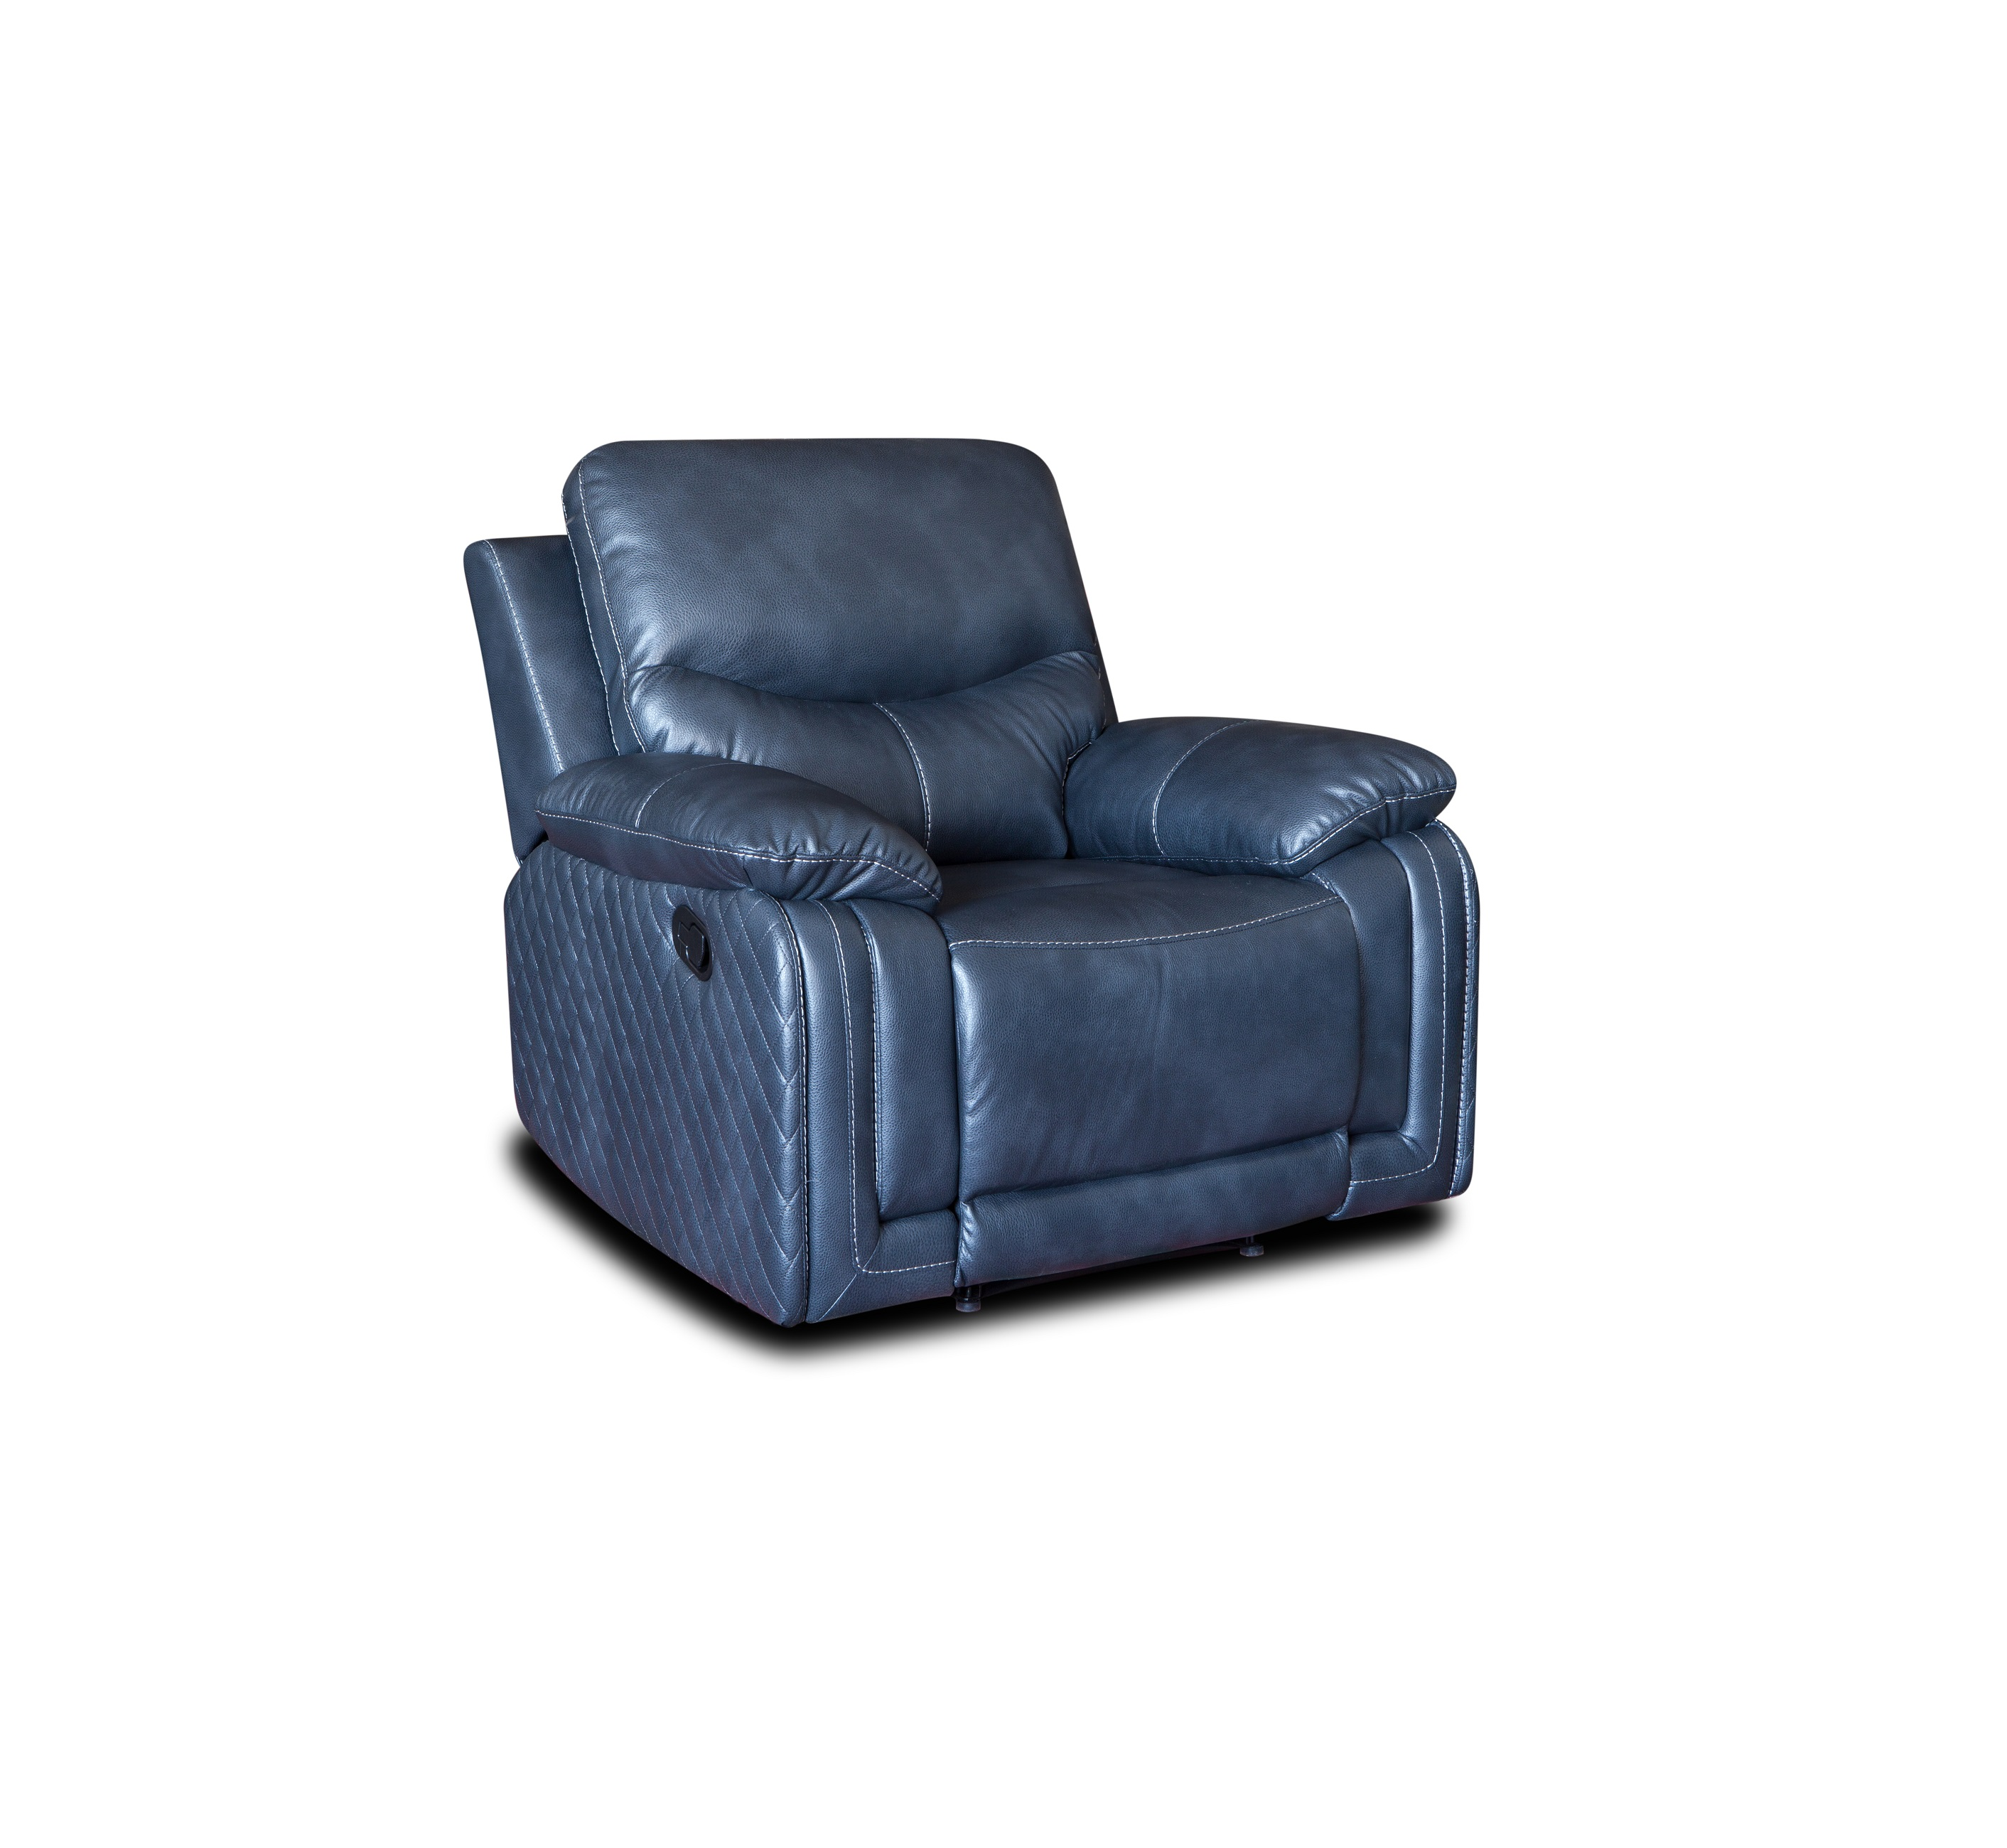 2019 modern leather one seater relax rocking chair